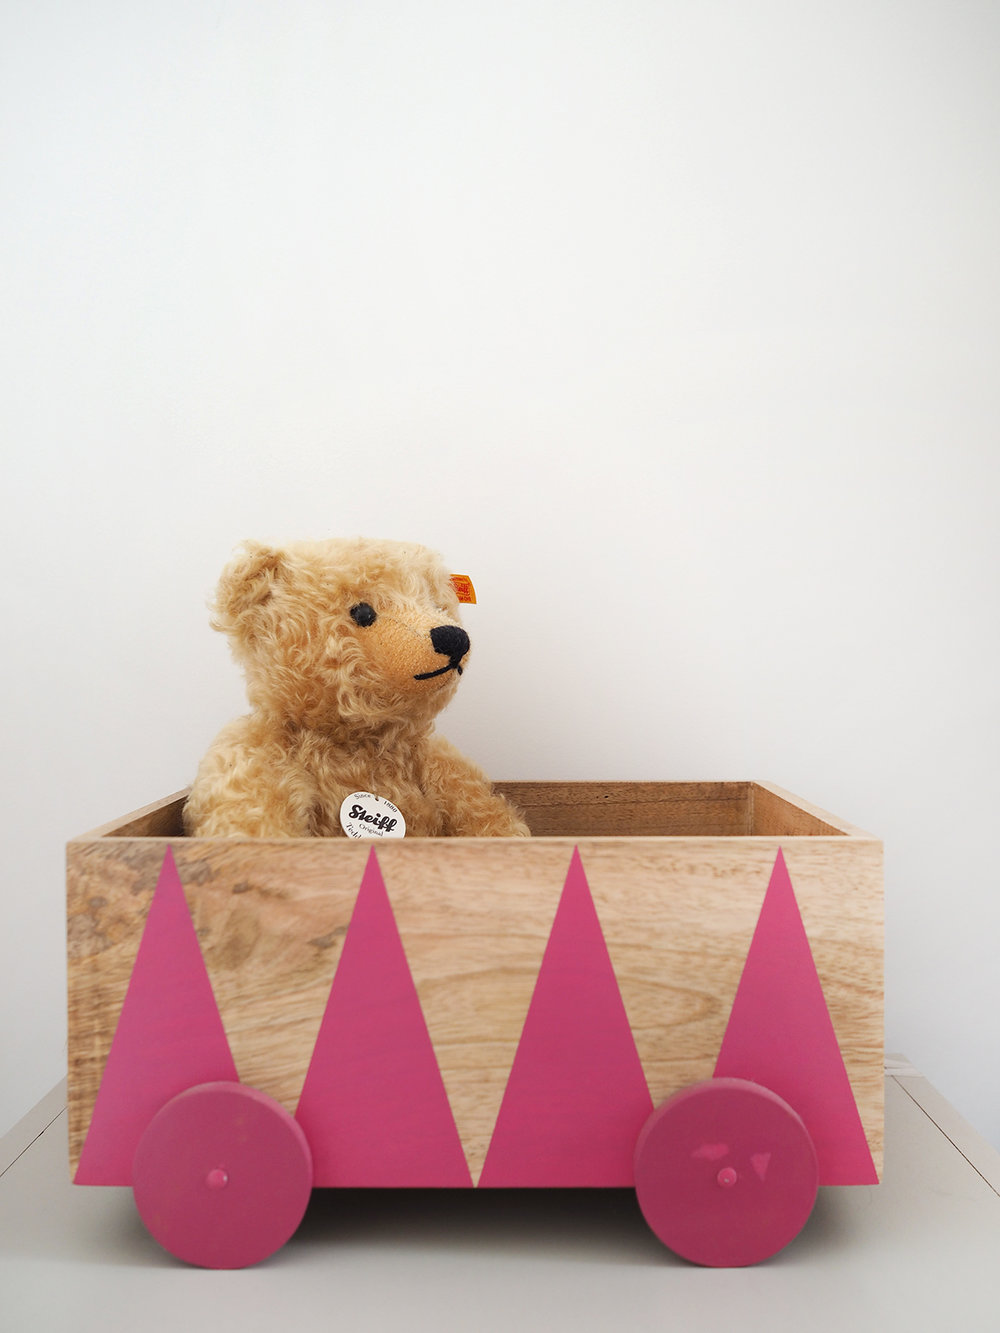 Steiff teddy , gift from grandparents; Wooden box from  H&M , no longer available.